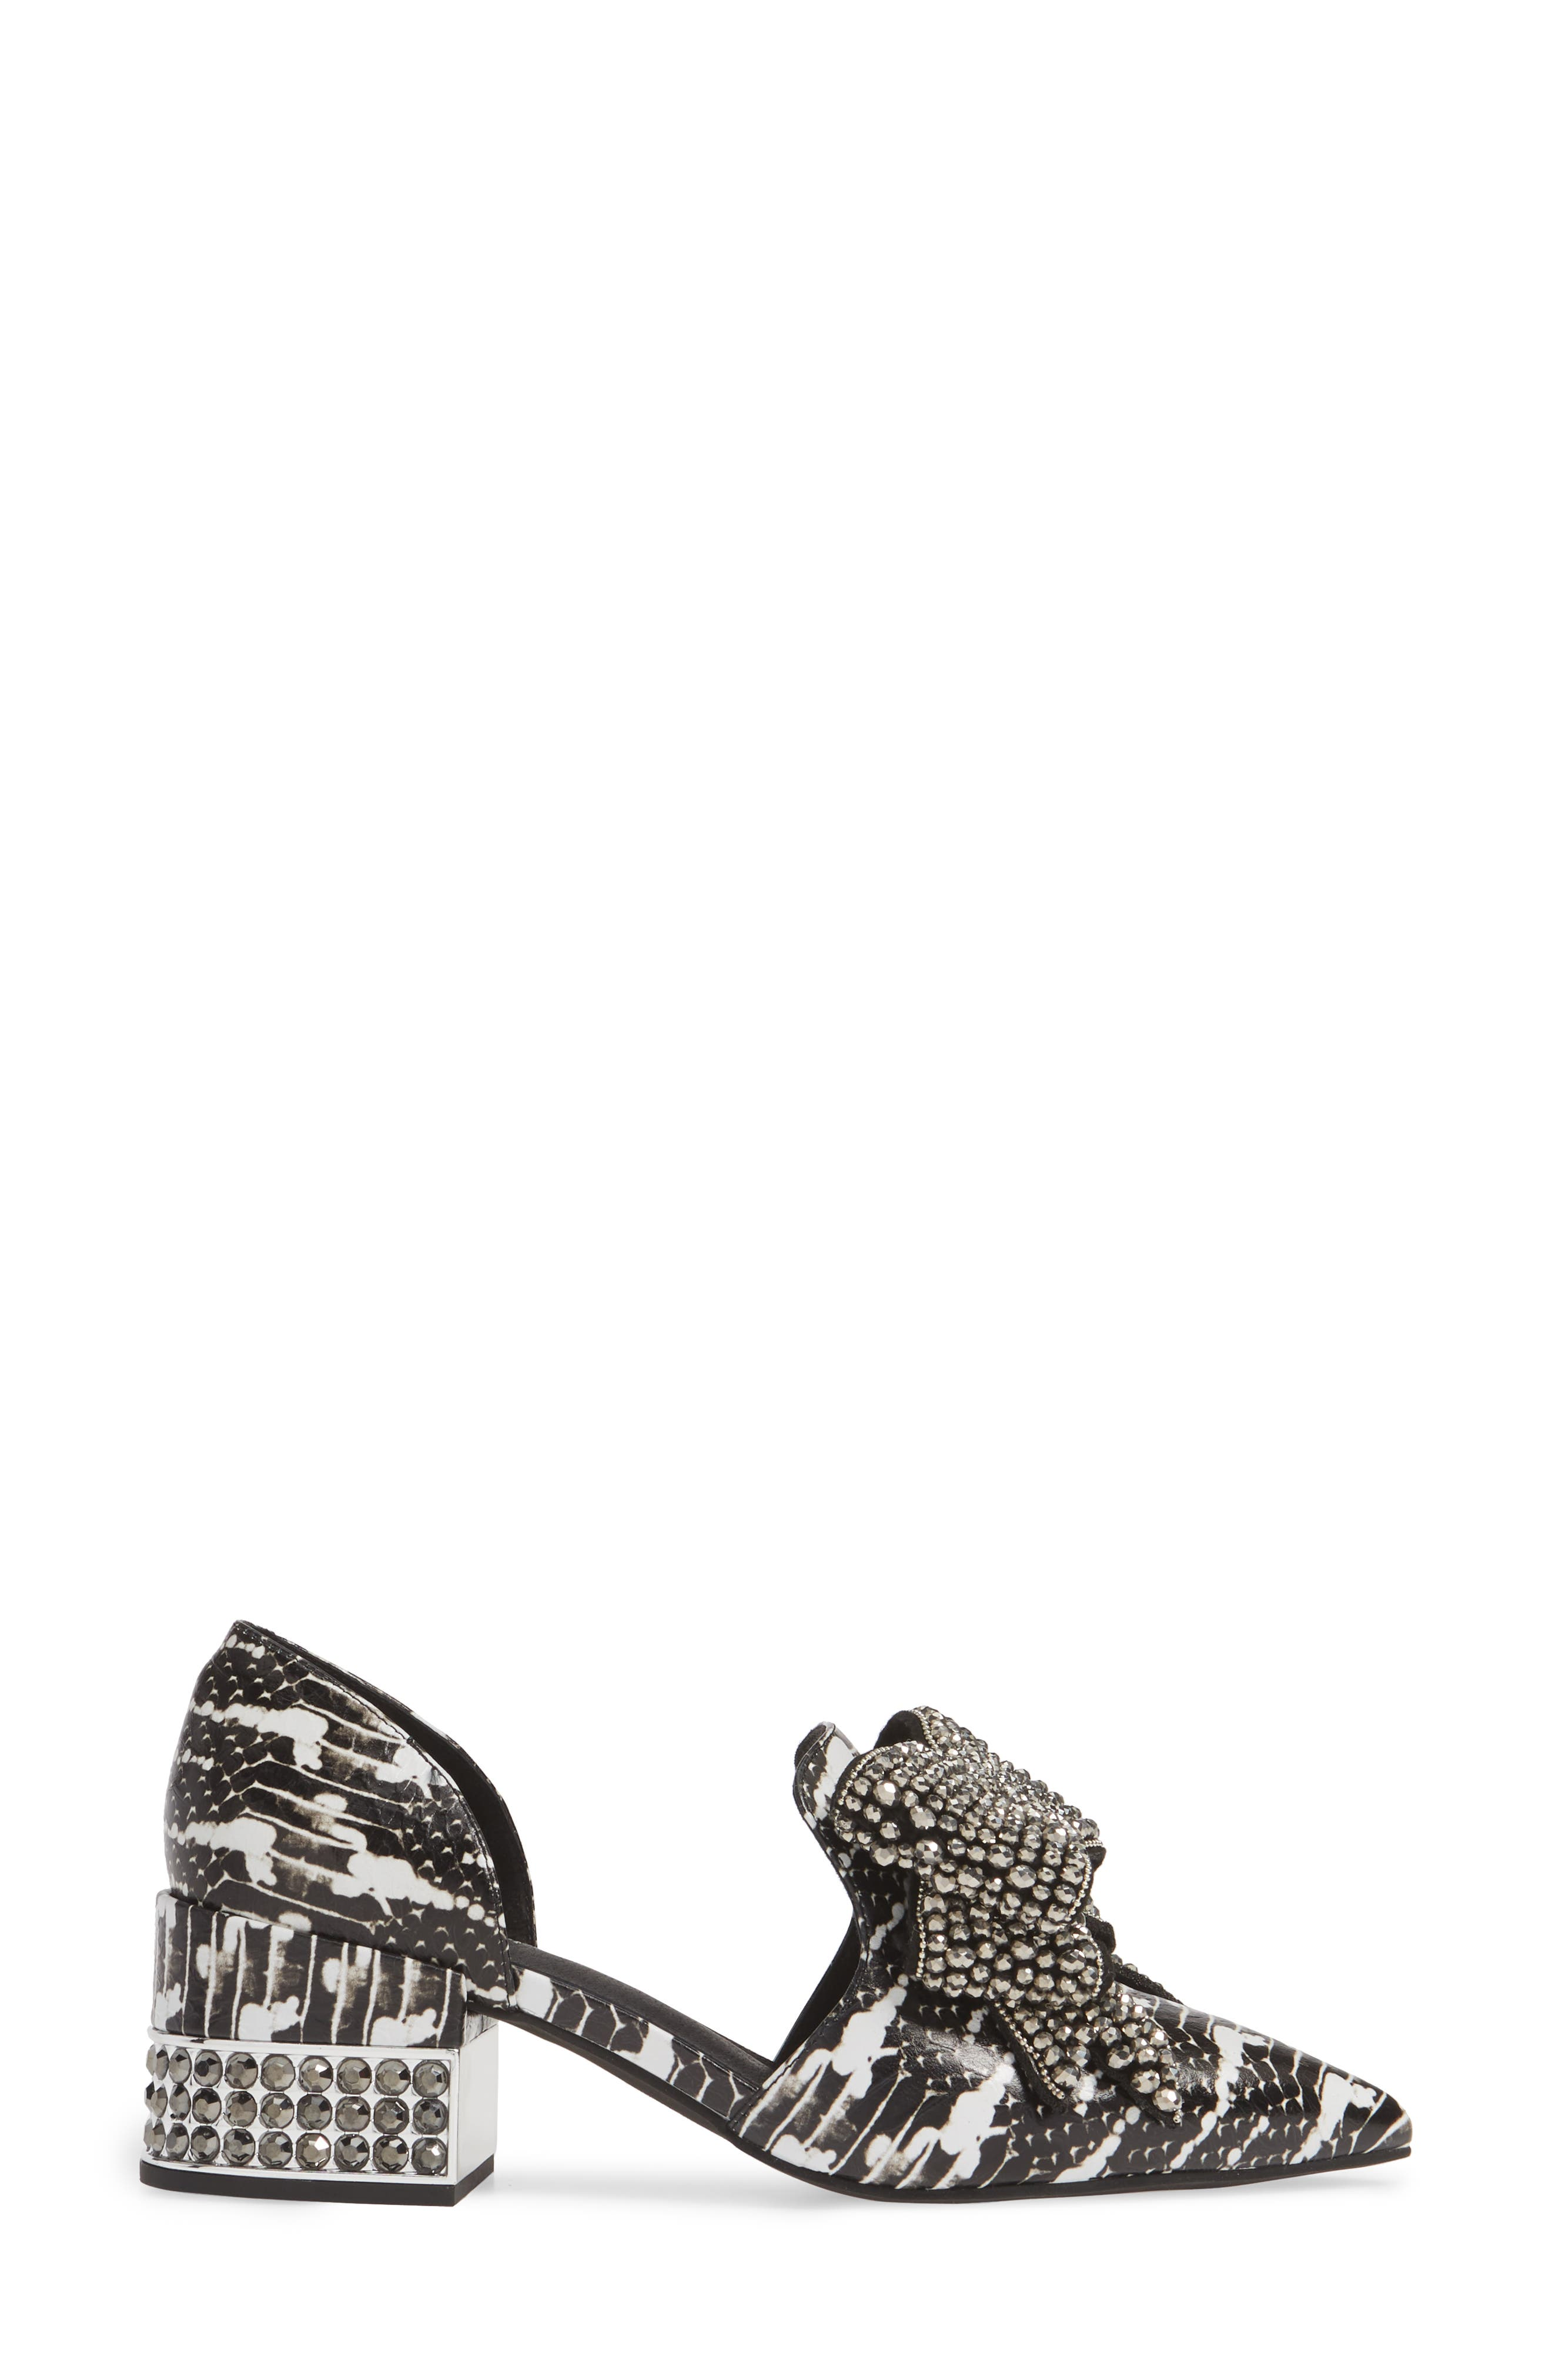 JEFFREY CAMPBELL, Valenti Embellished Bow Loafer, Alternate thumbnail 3, color, BLACK/WHITE/PEWTER